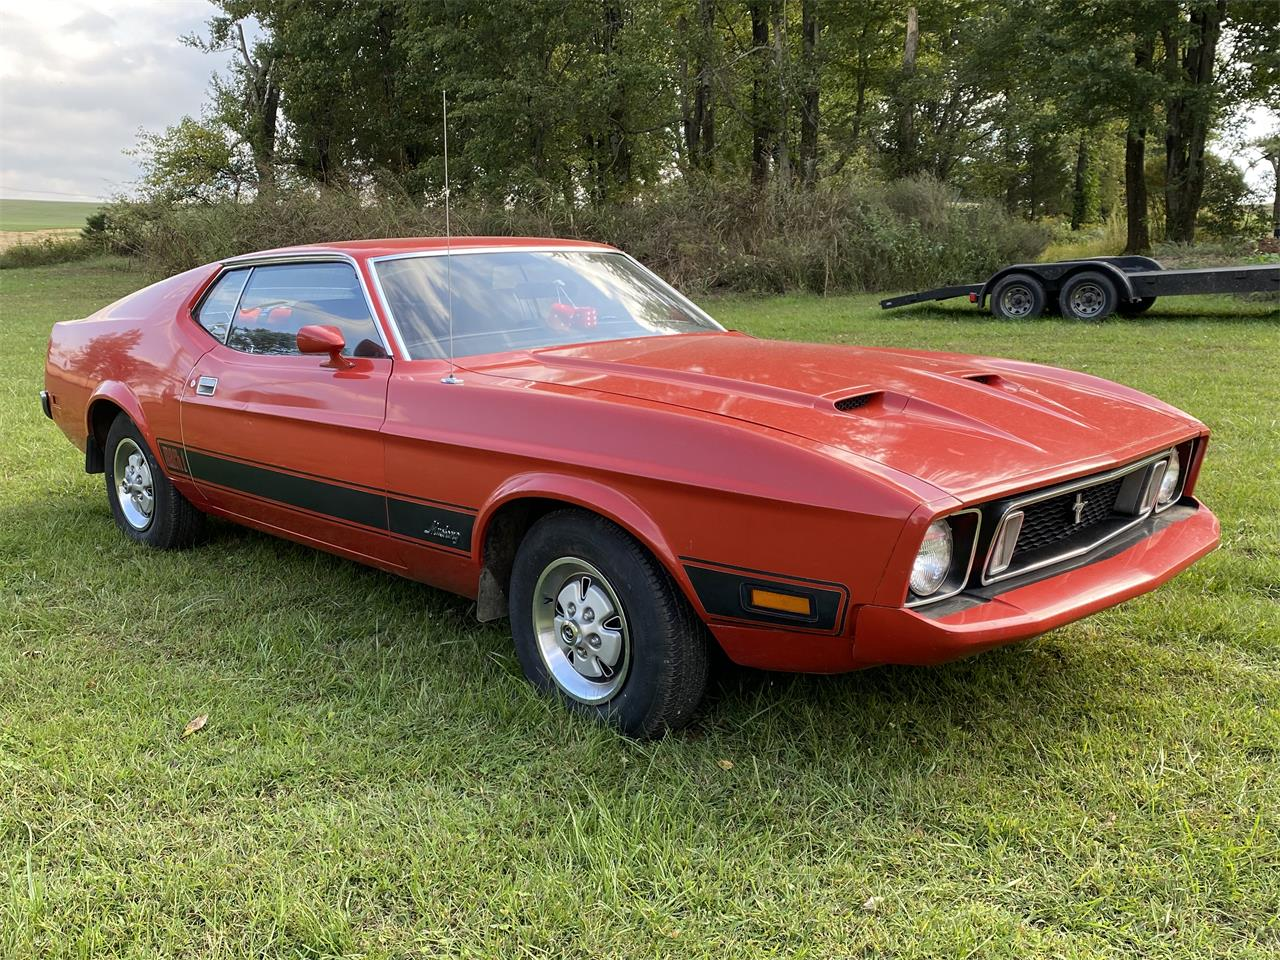 1973 Ford Mustang Mach 1 (CC-1420974) for sale in Elizabethtown, Kentucky